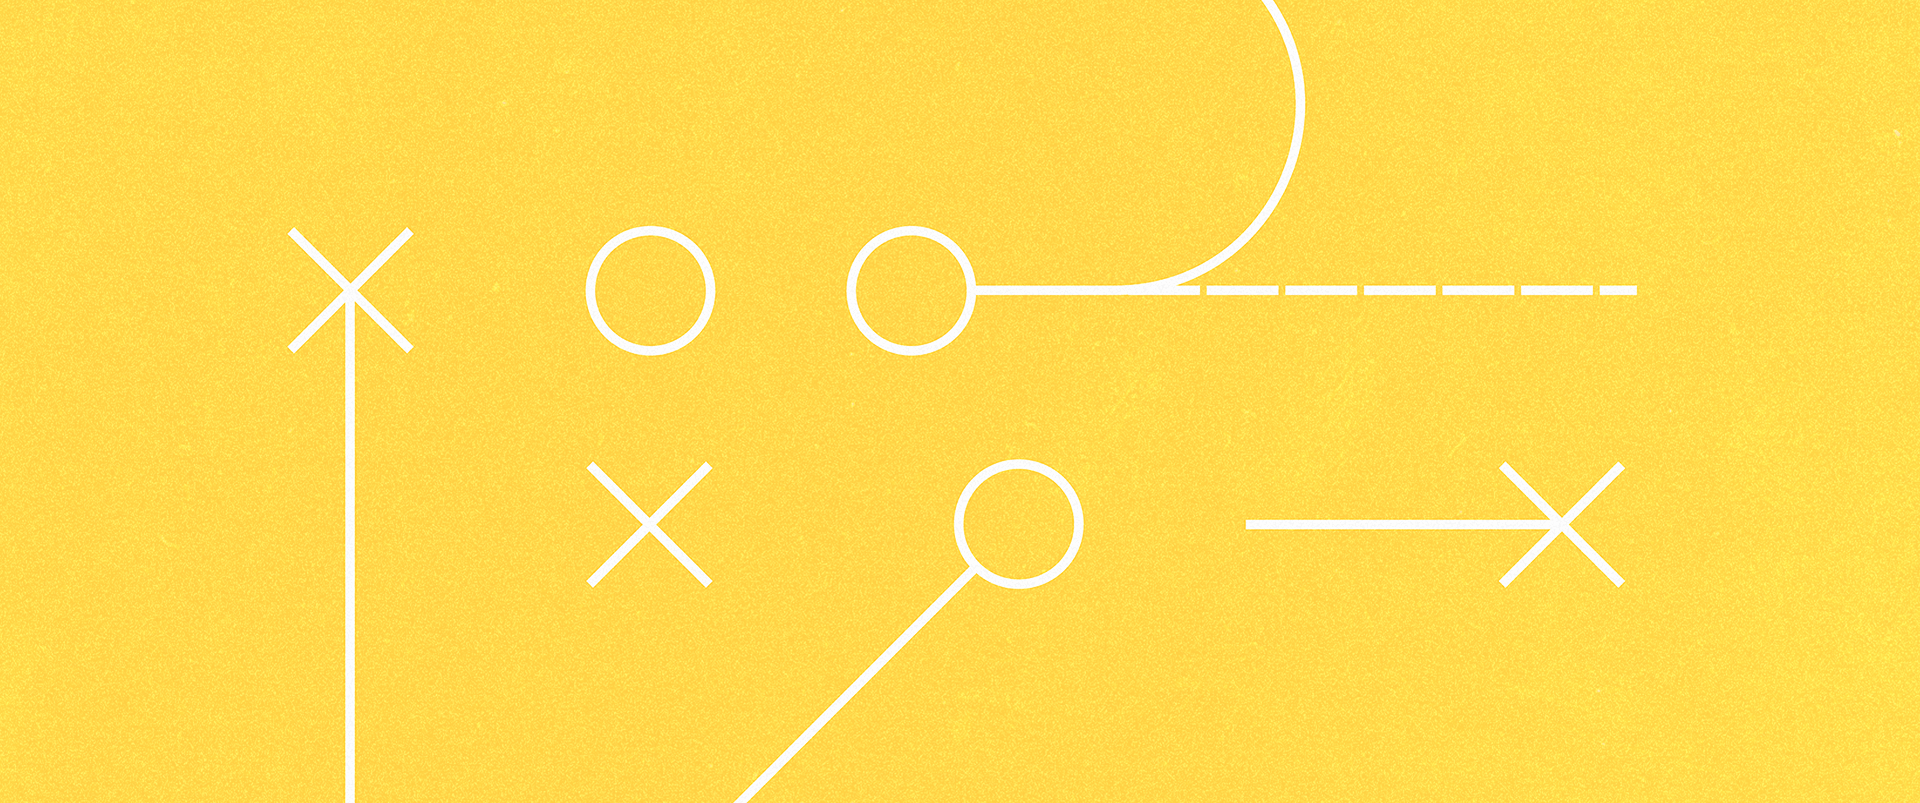 Abstract graphic of the thirteen23 logo involved in a football-style playbook.